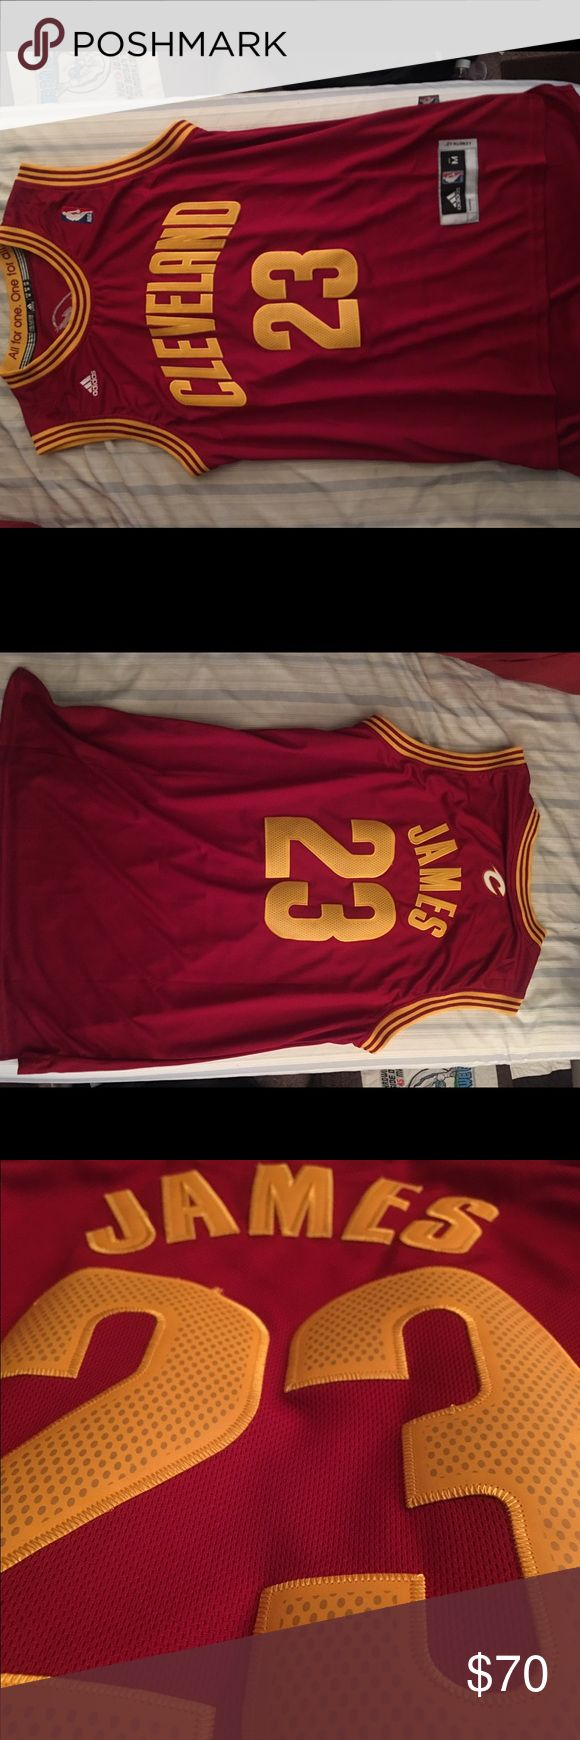 LeBron James Cleveland Cavs Jersey Worn once for a game - size medium, adidas brand, authentic.  *mens size but obviously more of a unisex jersey, fits well/true to size* Adidas Tops Muscle Tees